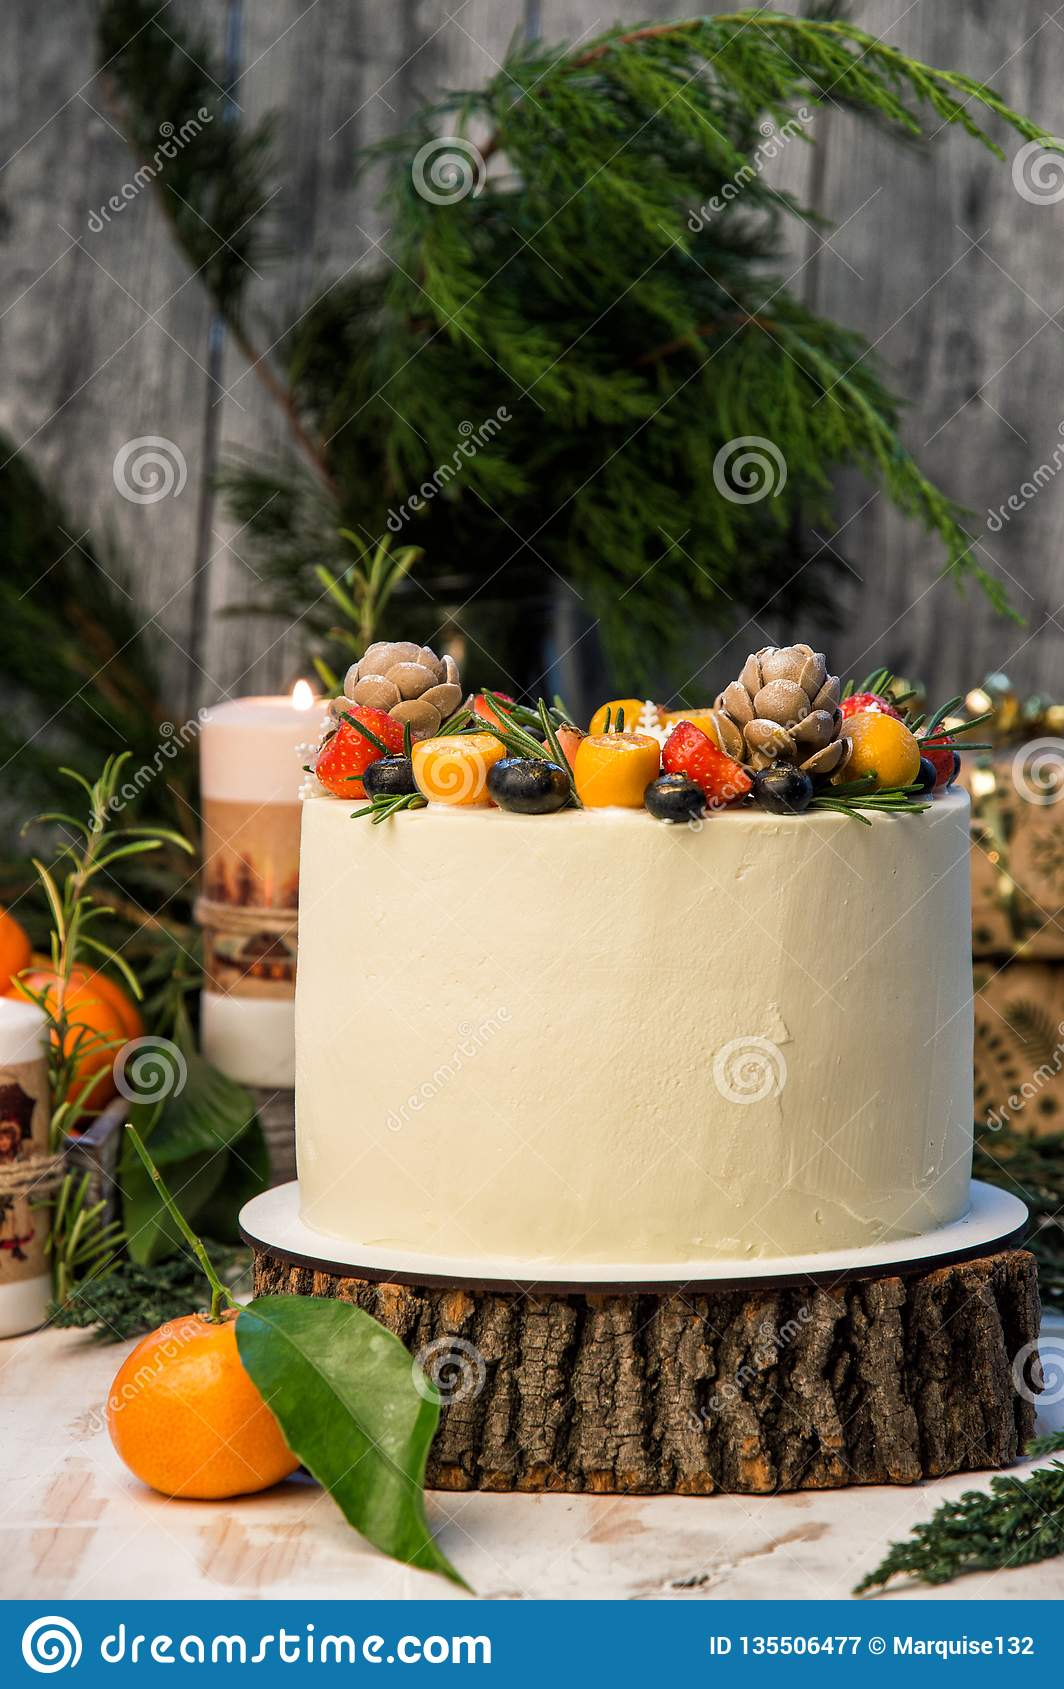 Close up. New Year`s Cake, decorated various berries. Gray wooden background, junipes branches